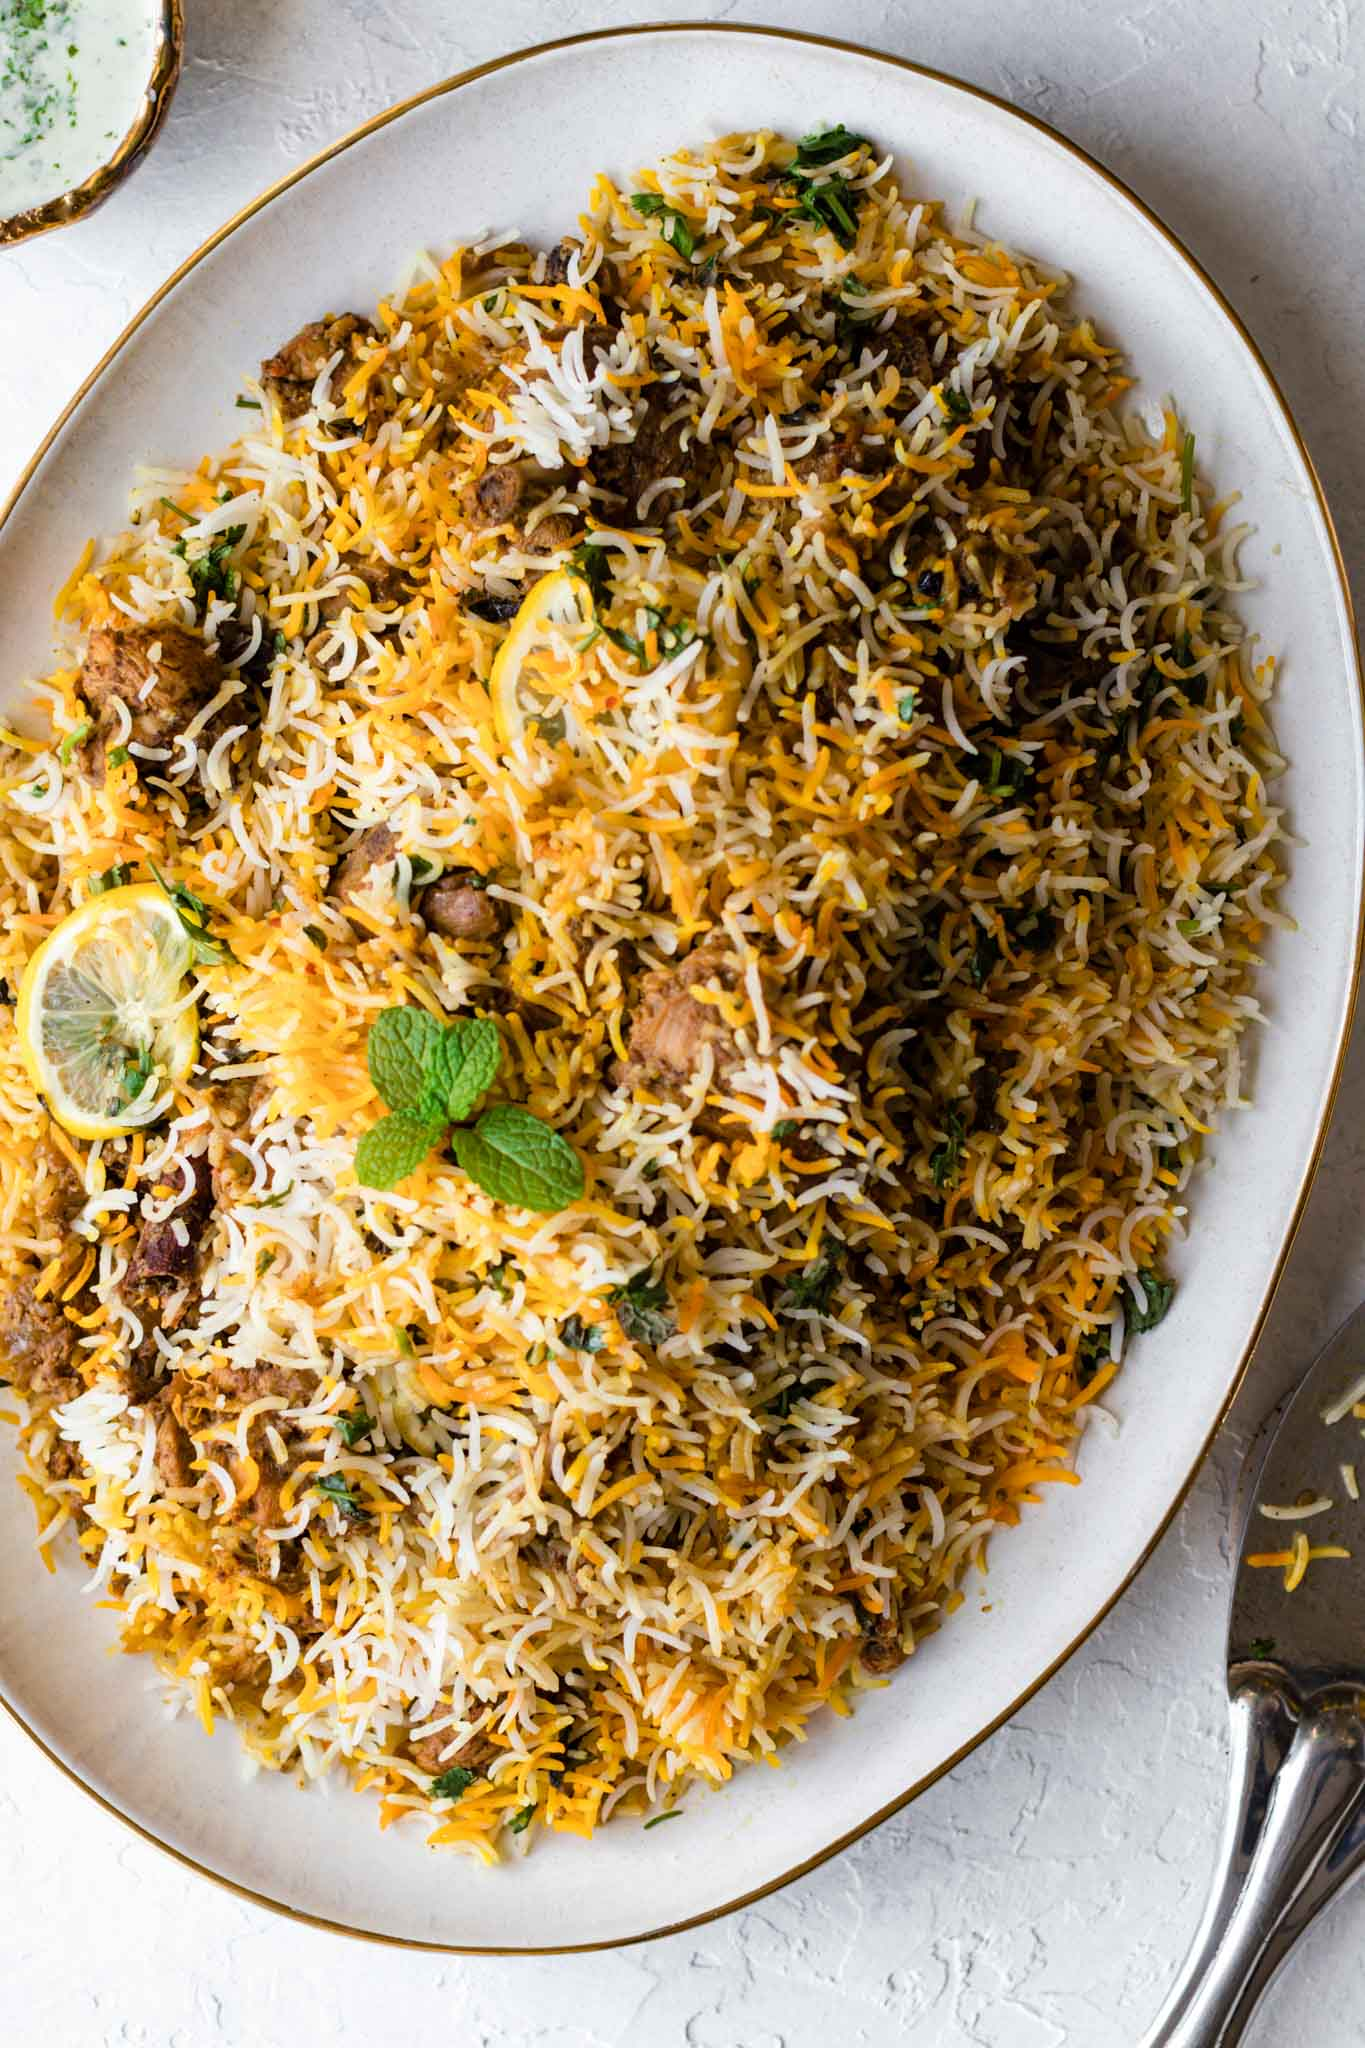 Chicken Biryani on a large, gold-trimmed platter garnished with mint and lemons with yogurt raita and a traditional serving spoon on the side